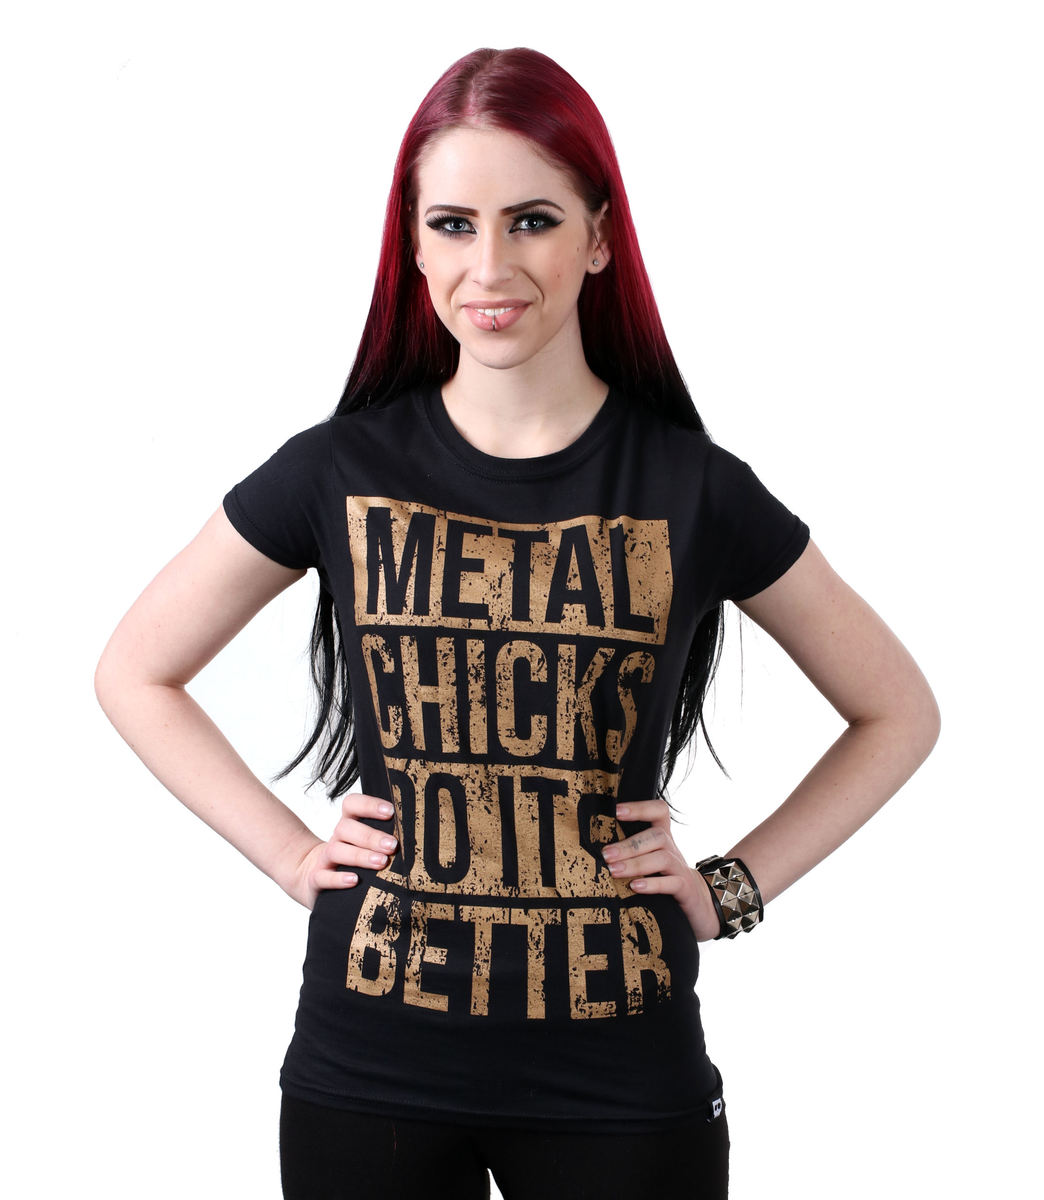 METAL CHICKS DO IT BETTER Metal chicks černá